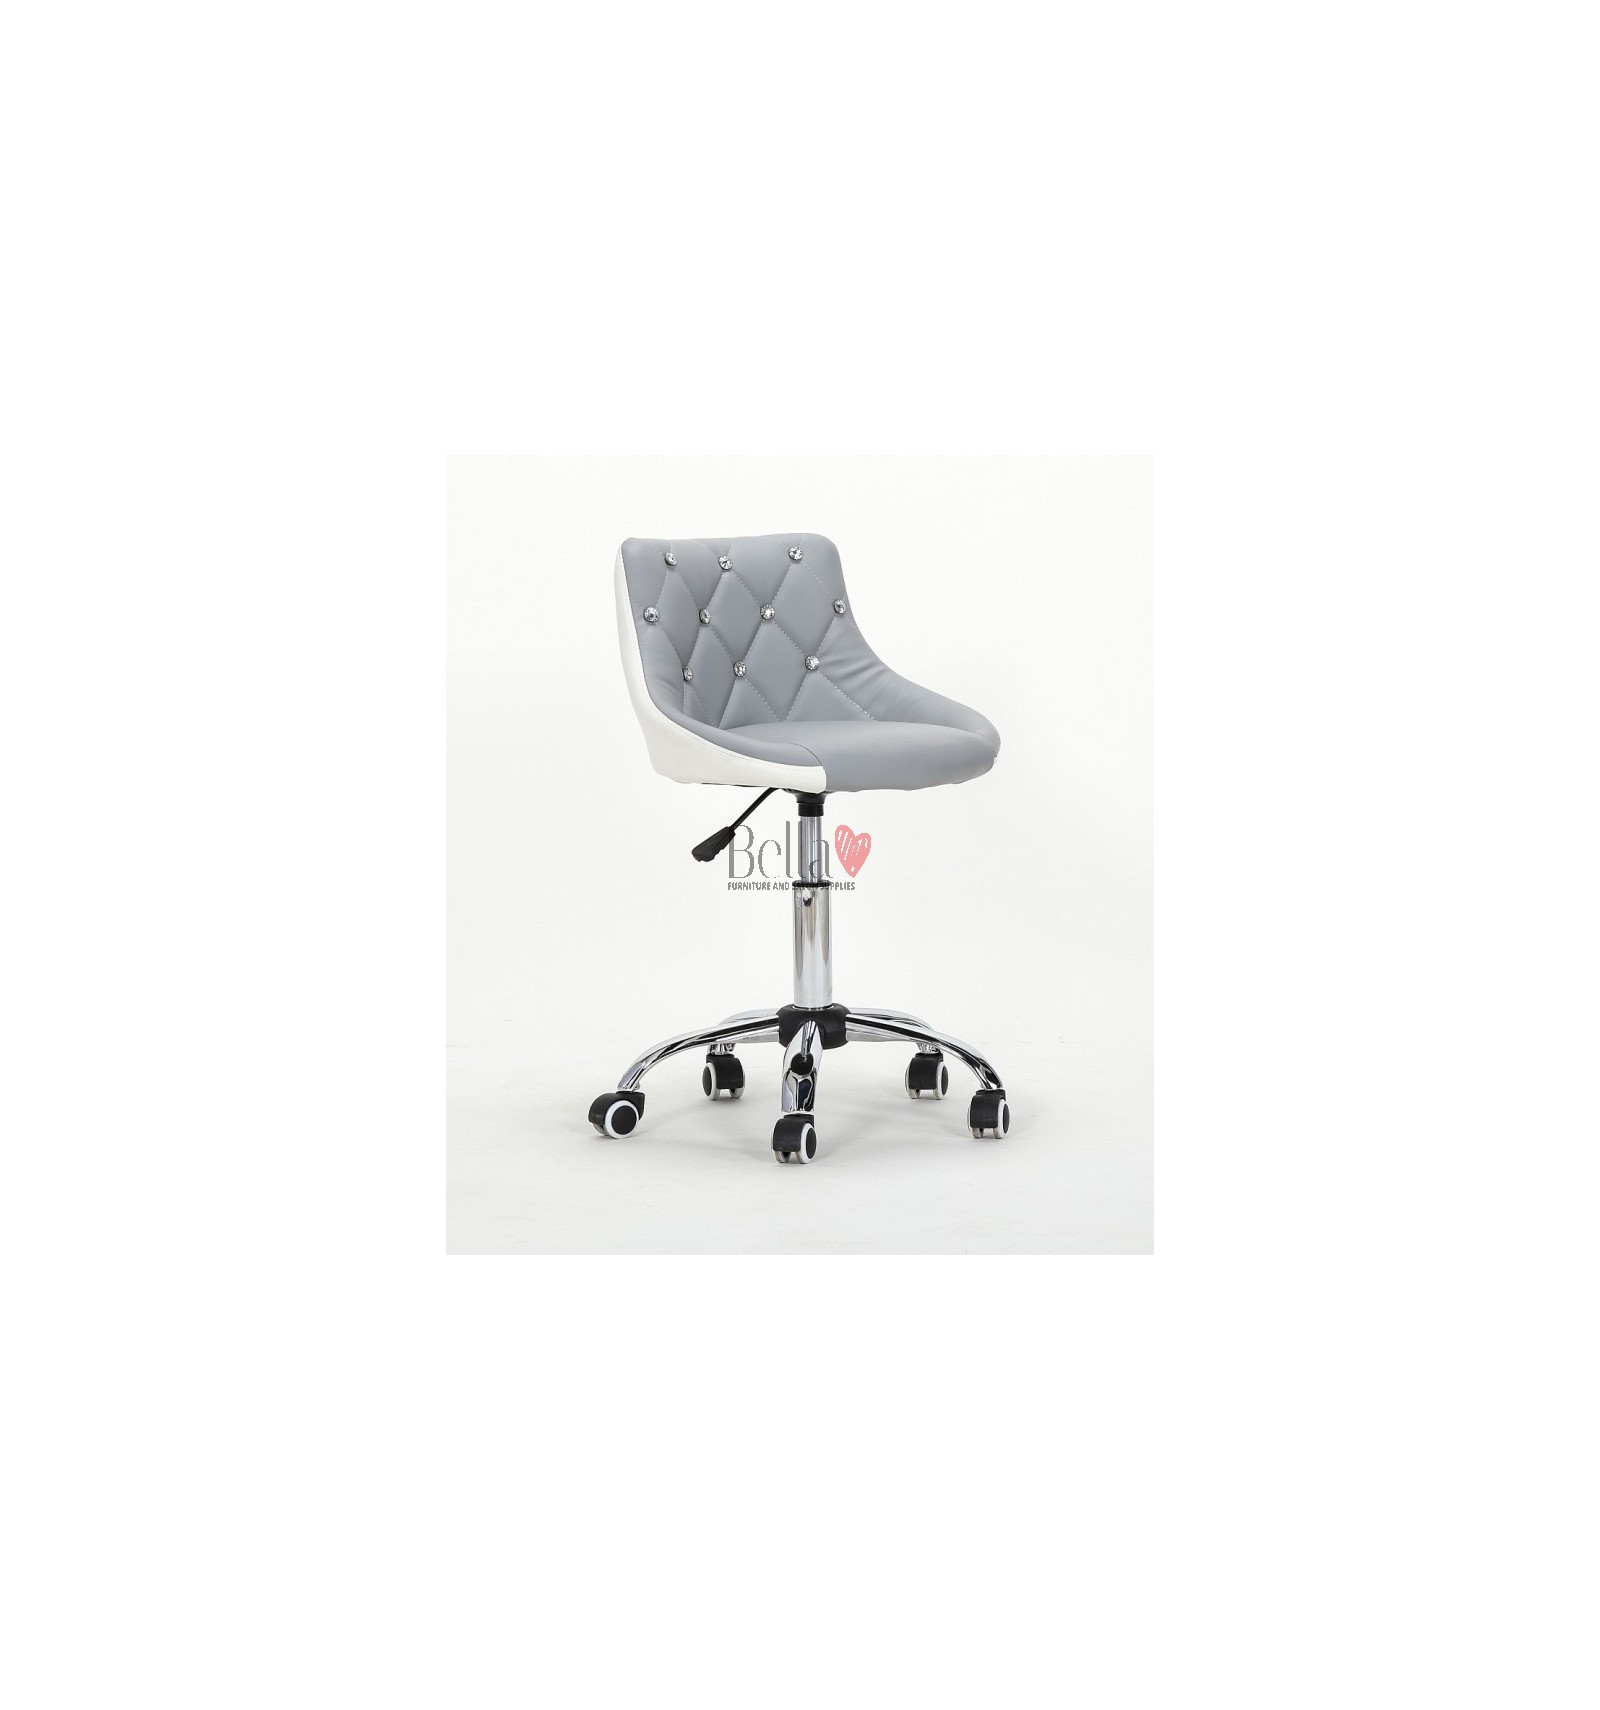 Bella Furniture Chairs For Beauty Salons Hairdressers